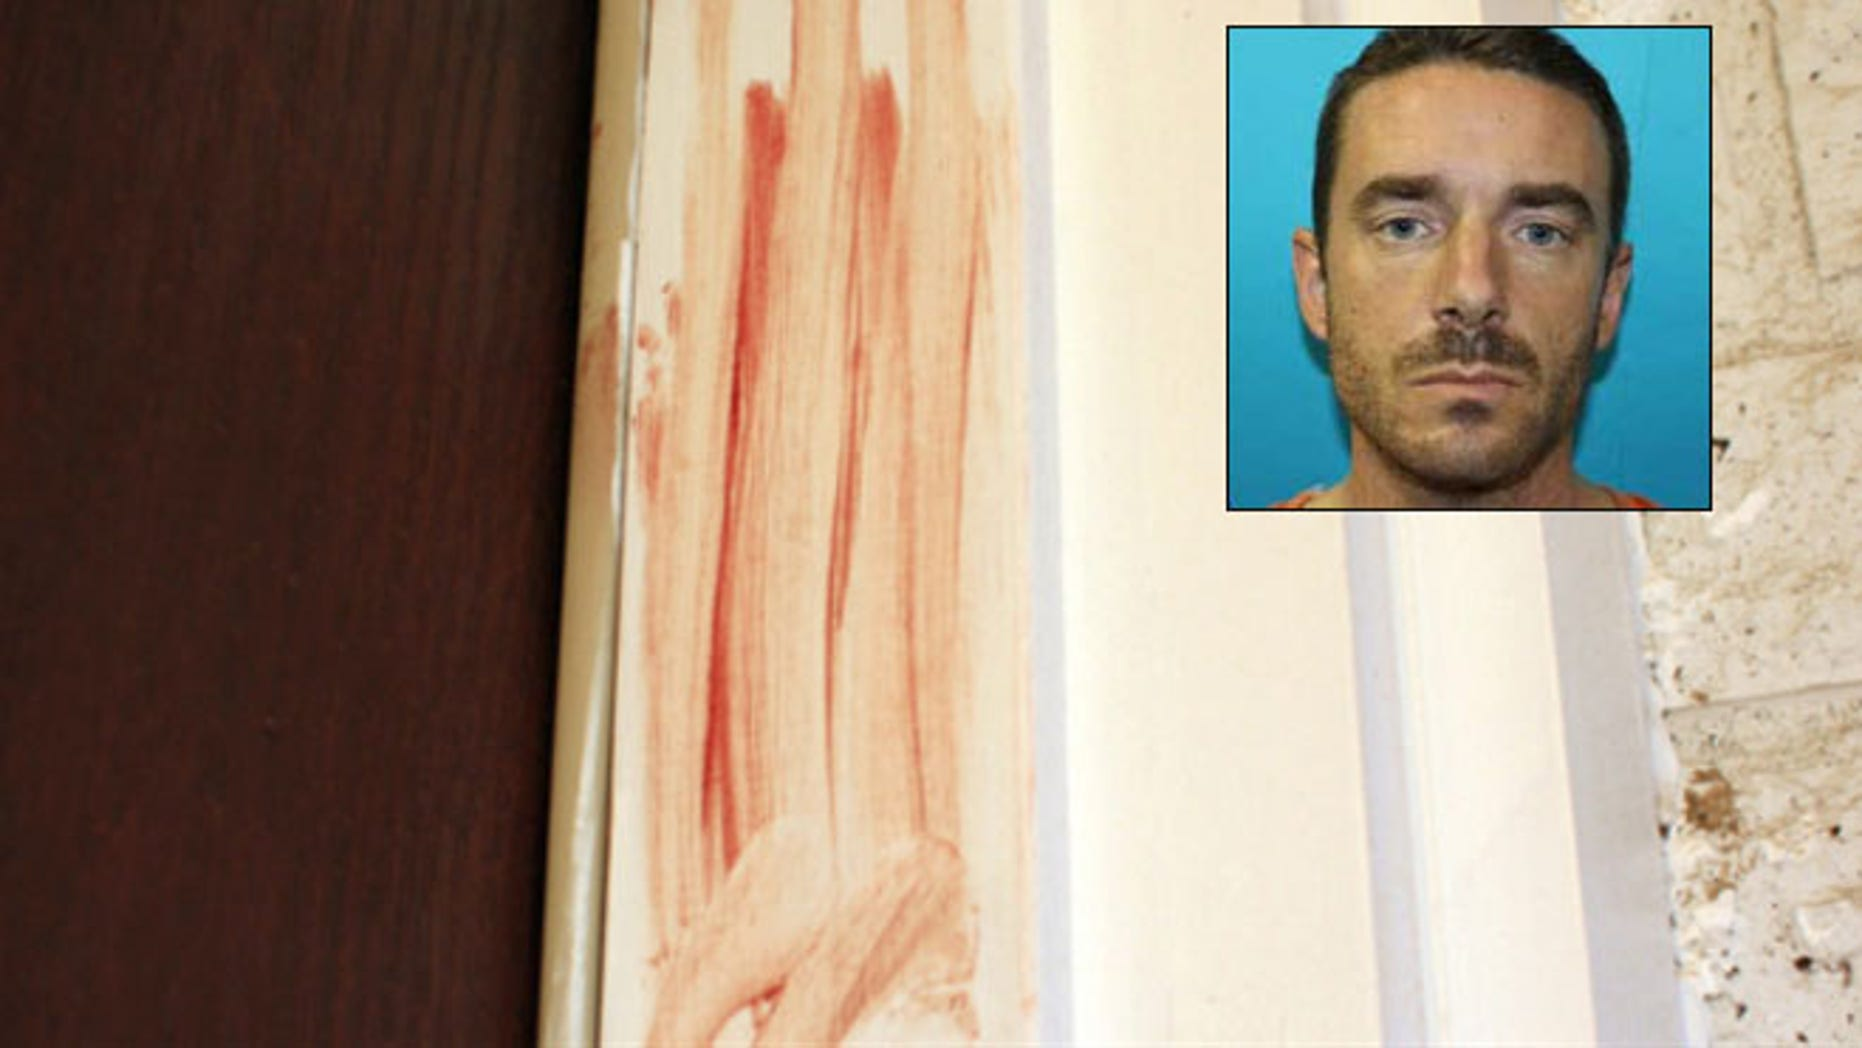 Dec. 12, 2012: Blood is smeared on the door frame at a home in Richland Hills, Texas, where Brent Troy Bartel is accused of using a box cutter to carve a pentagram in his six-year-old son's back.